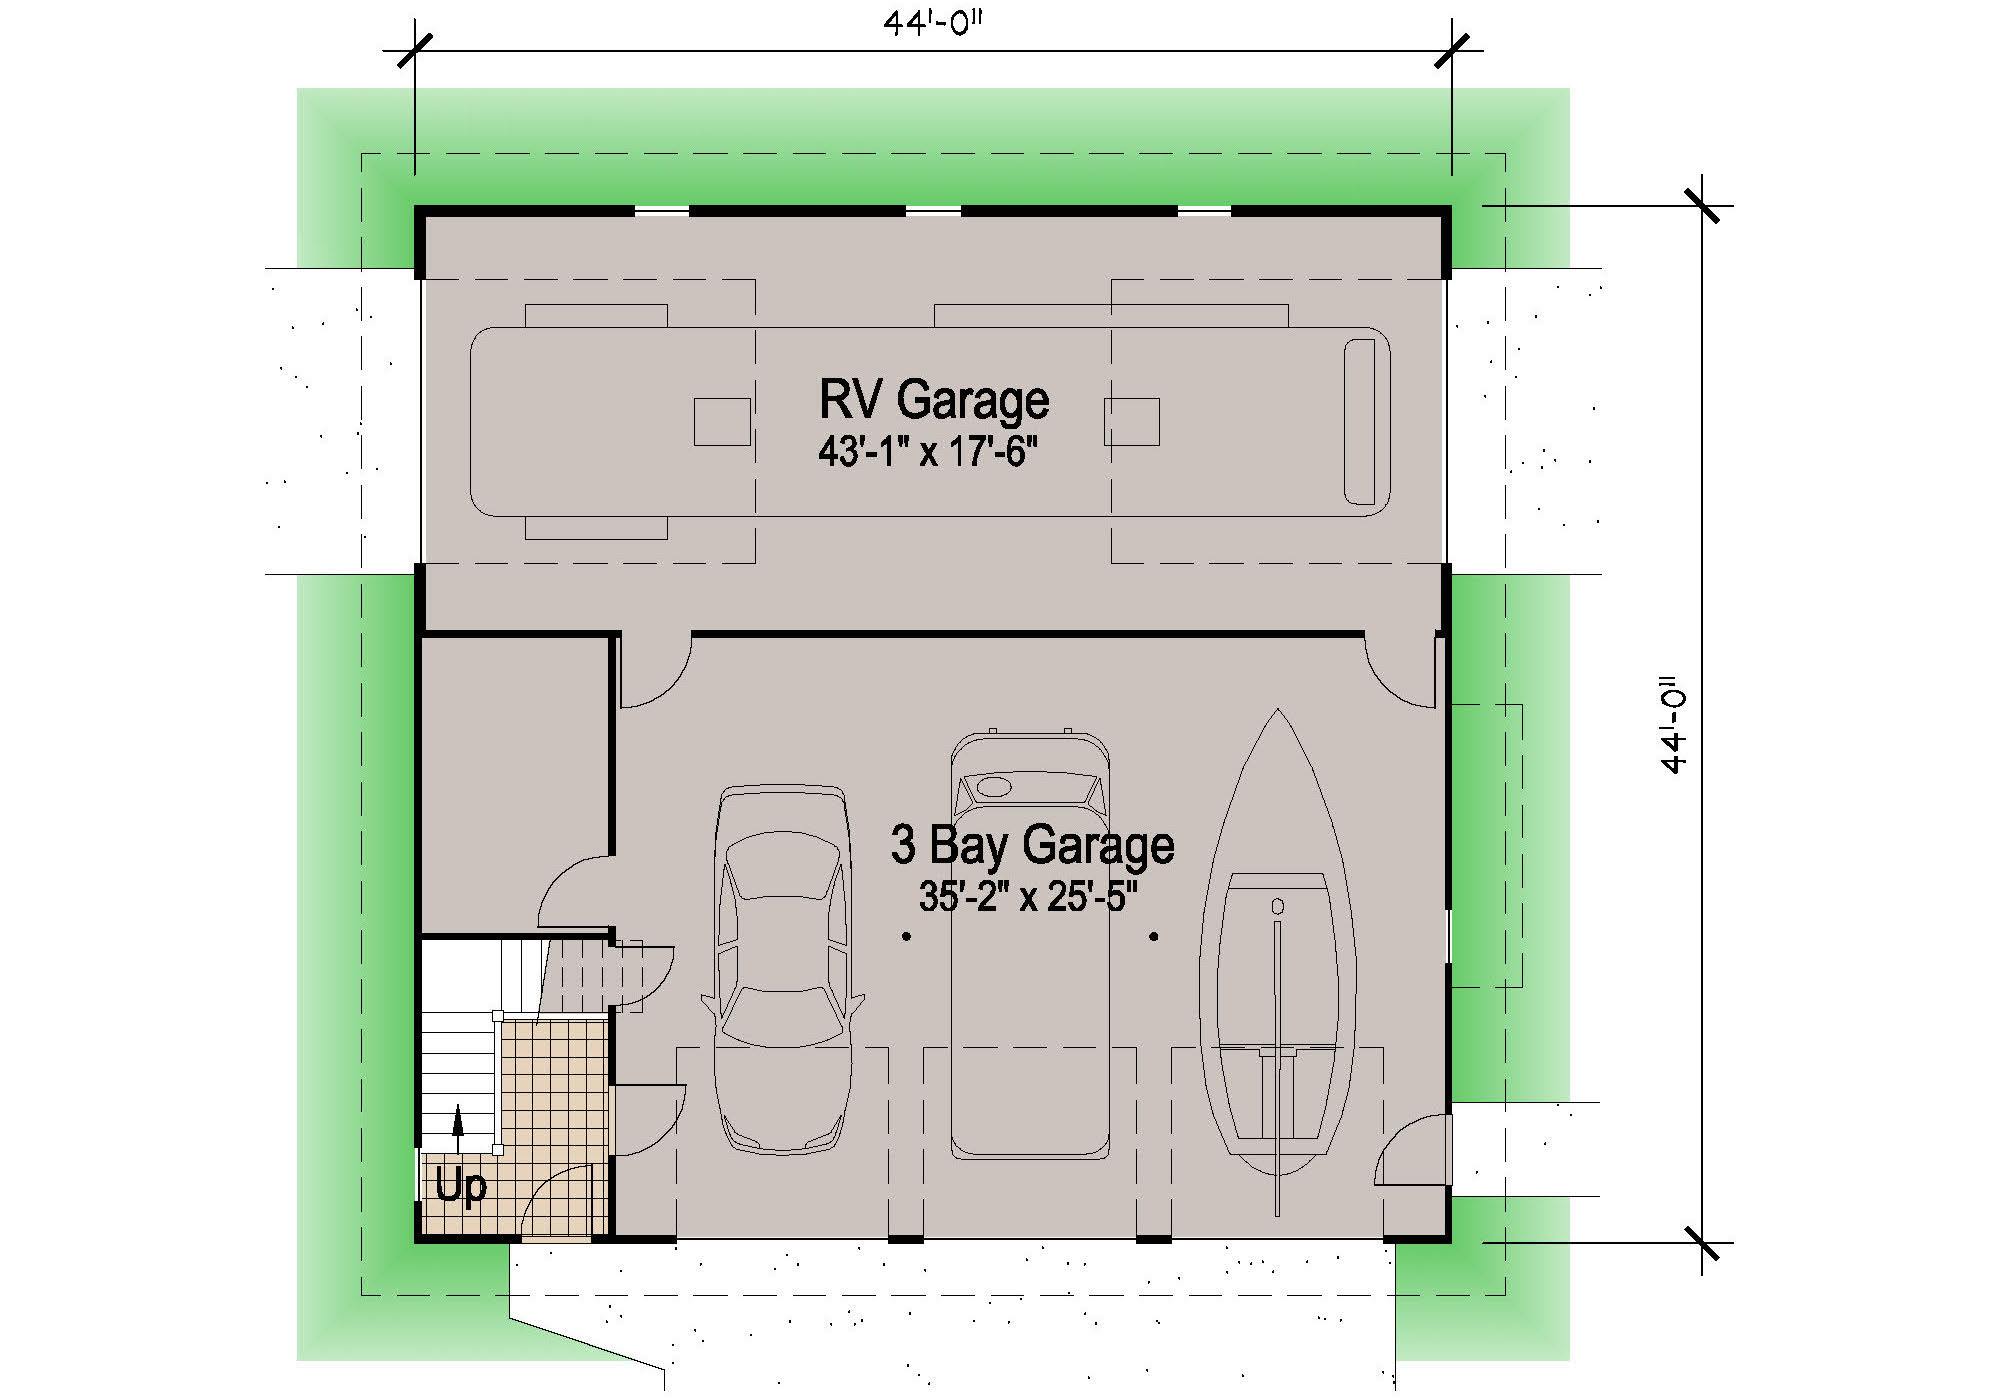 two car garage and rv garage with loft 059d 6015 garage plans and two car garage and rv garage with loft 059d 6015 garage plans and two car